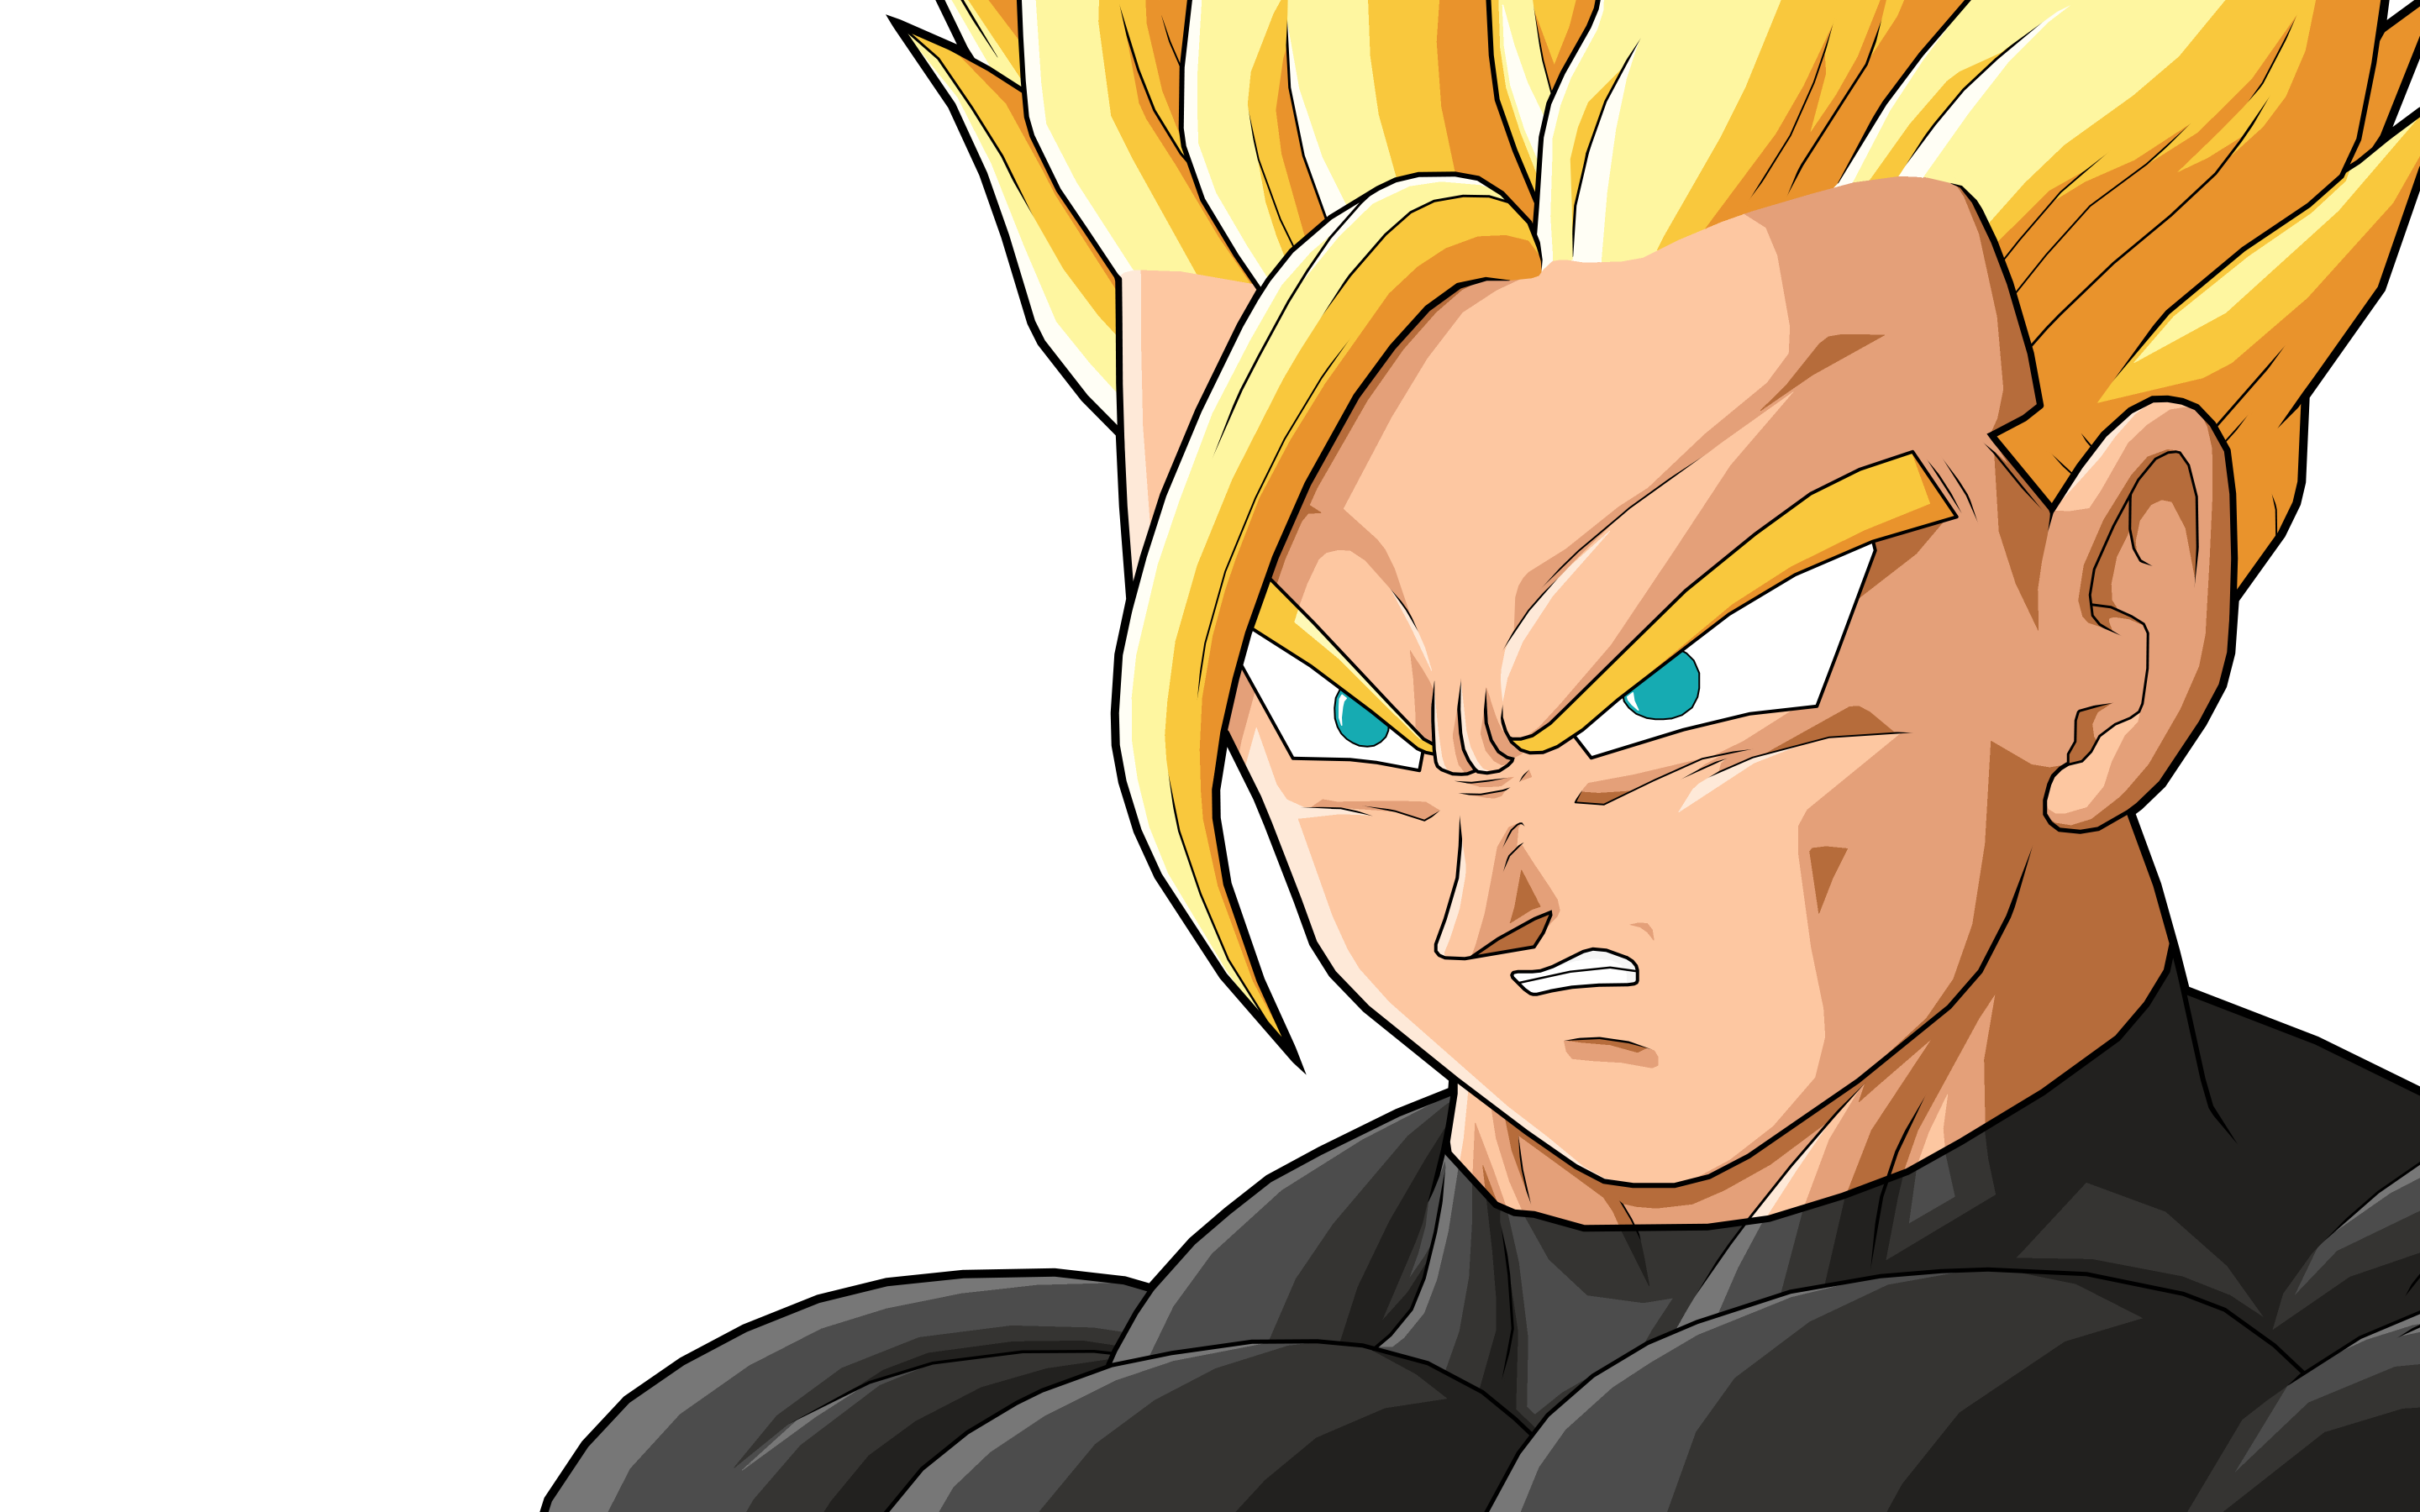 Gohan ssj hd wallpaper background image 2880x1800 id - Dragon ball z gohan images ...